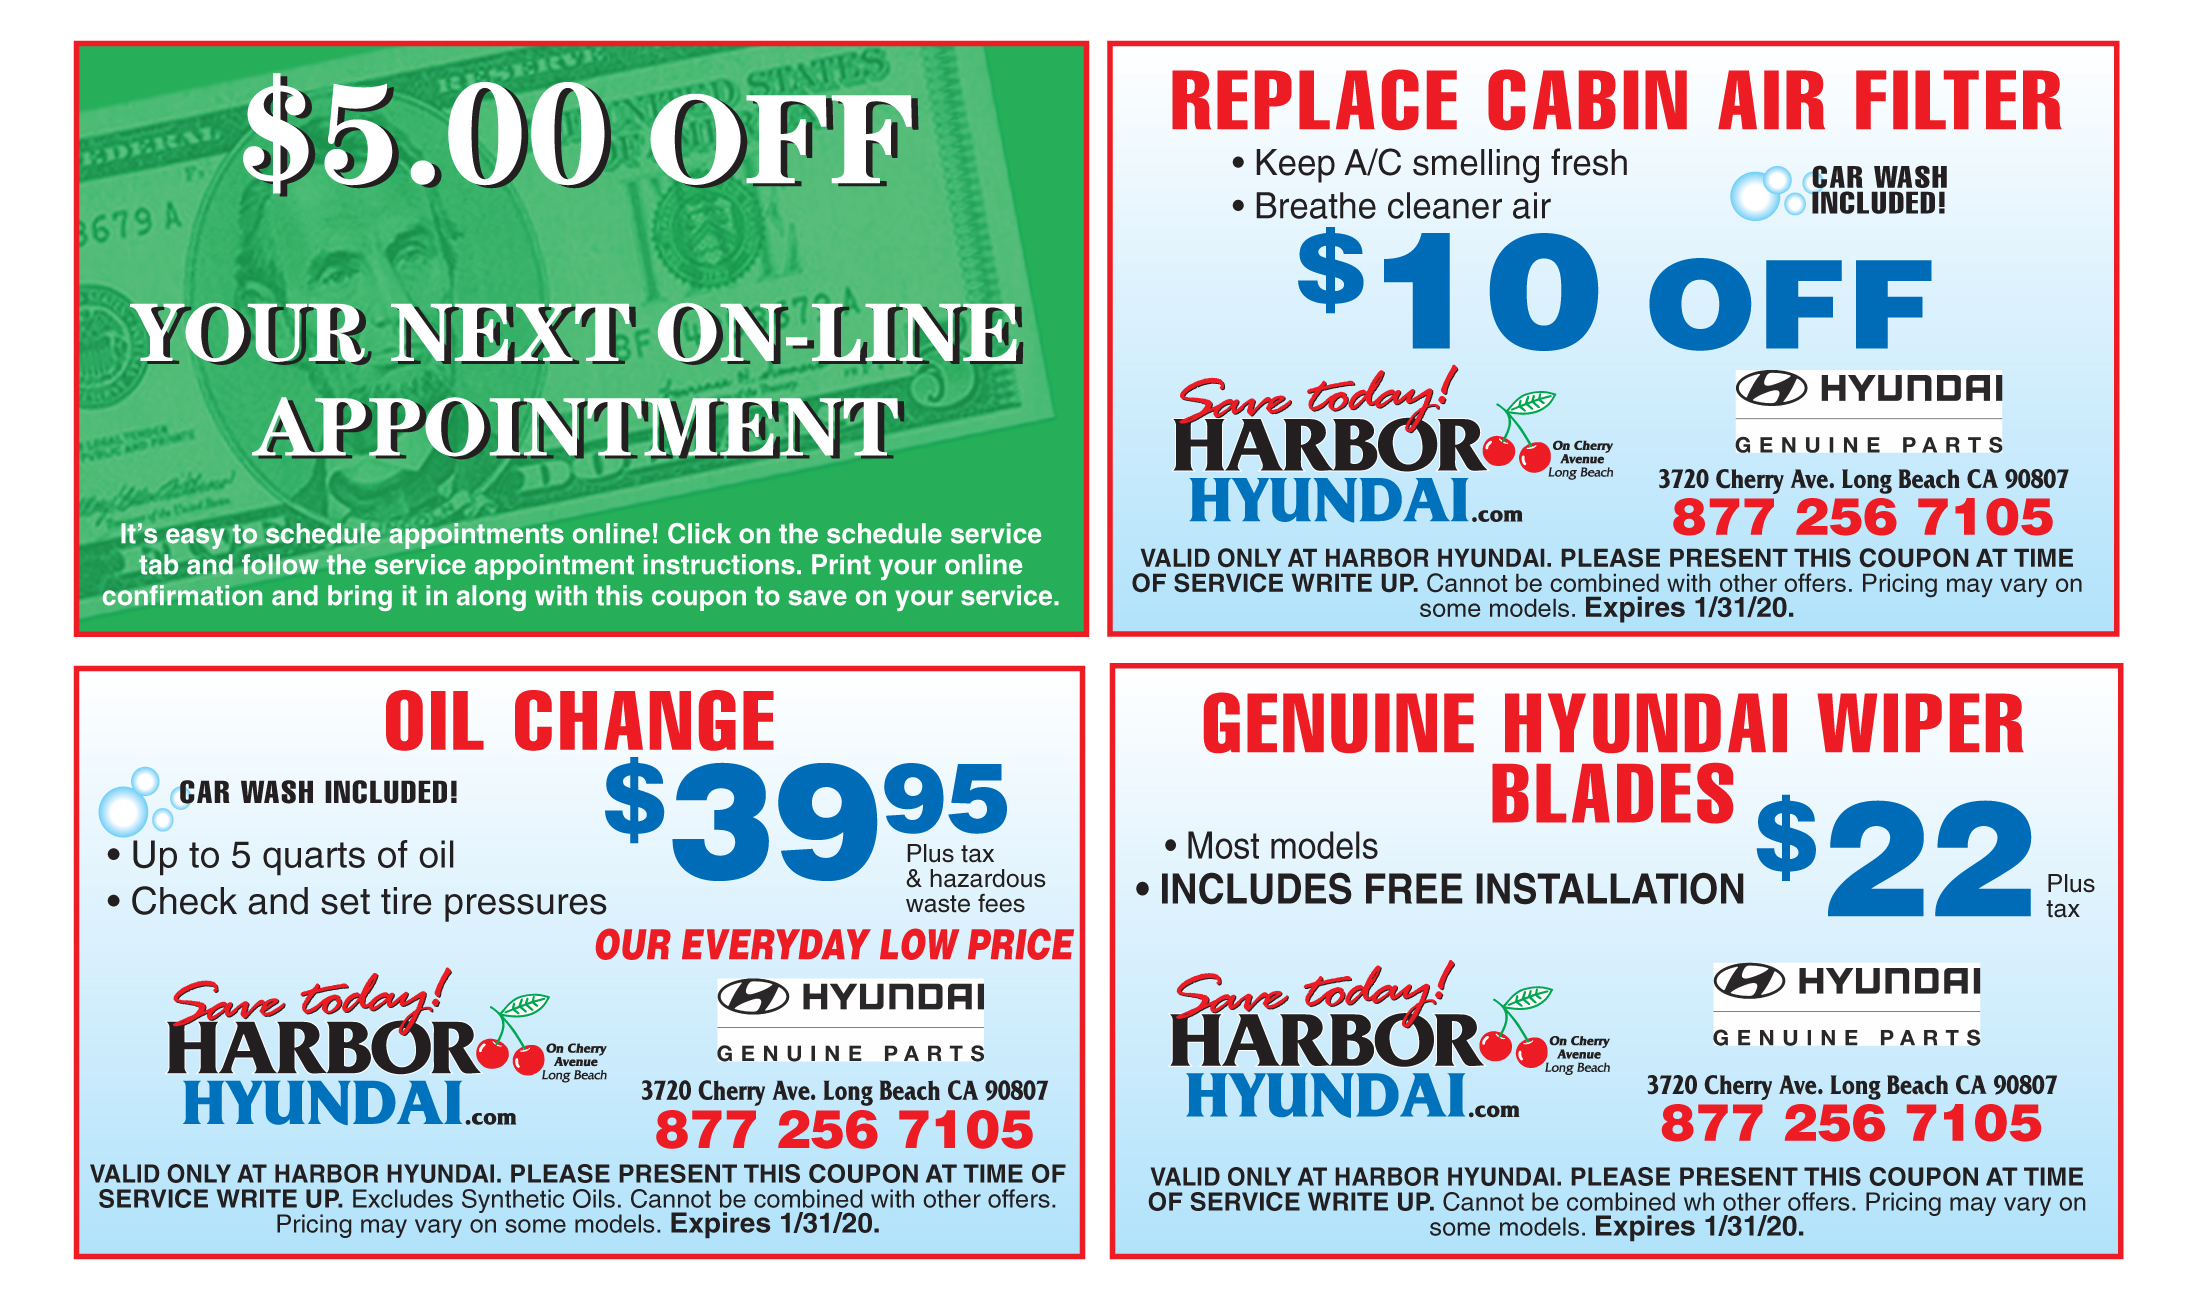 $5 off your next on-line appointment, $10 off Cabin air filter, Oil change $39.95, Hyundai Wiper Blades $22, Coupons